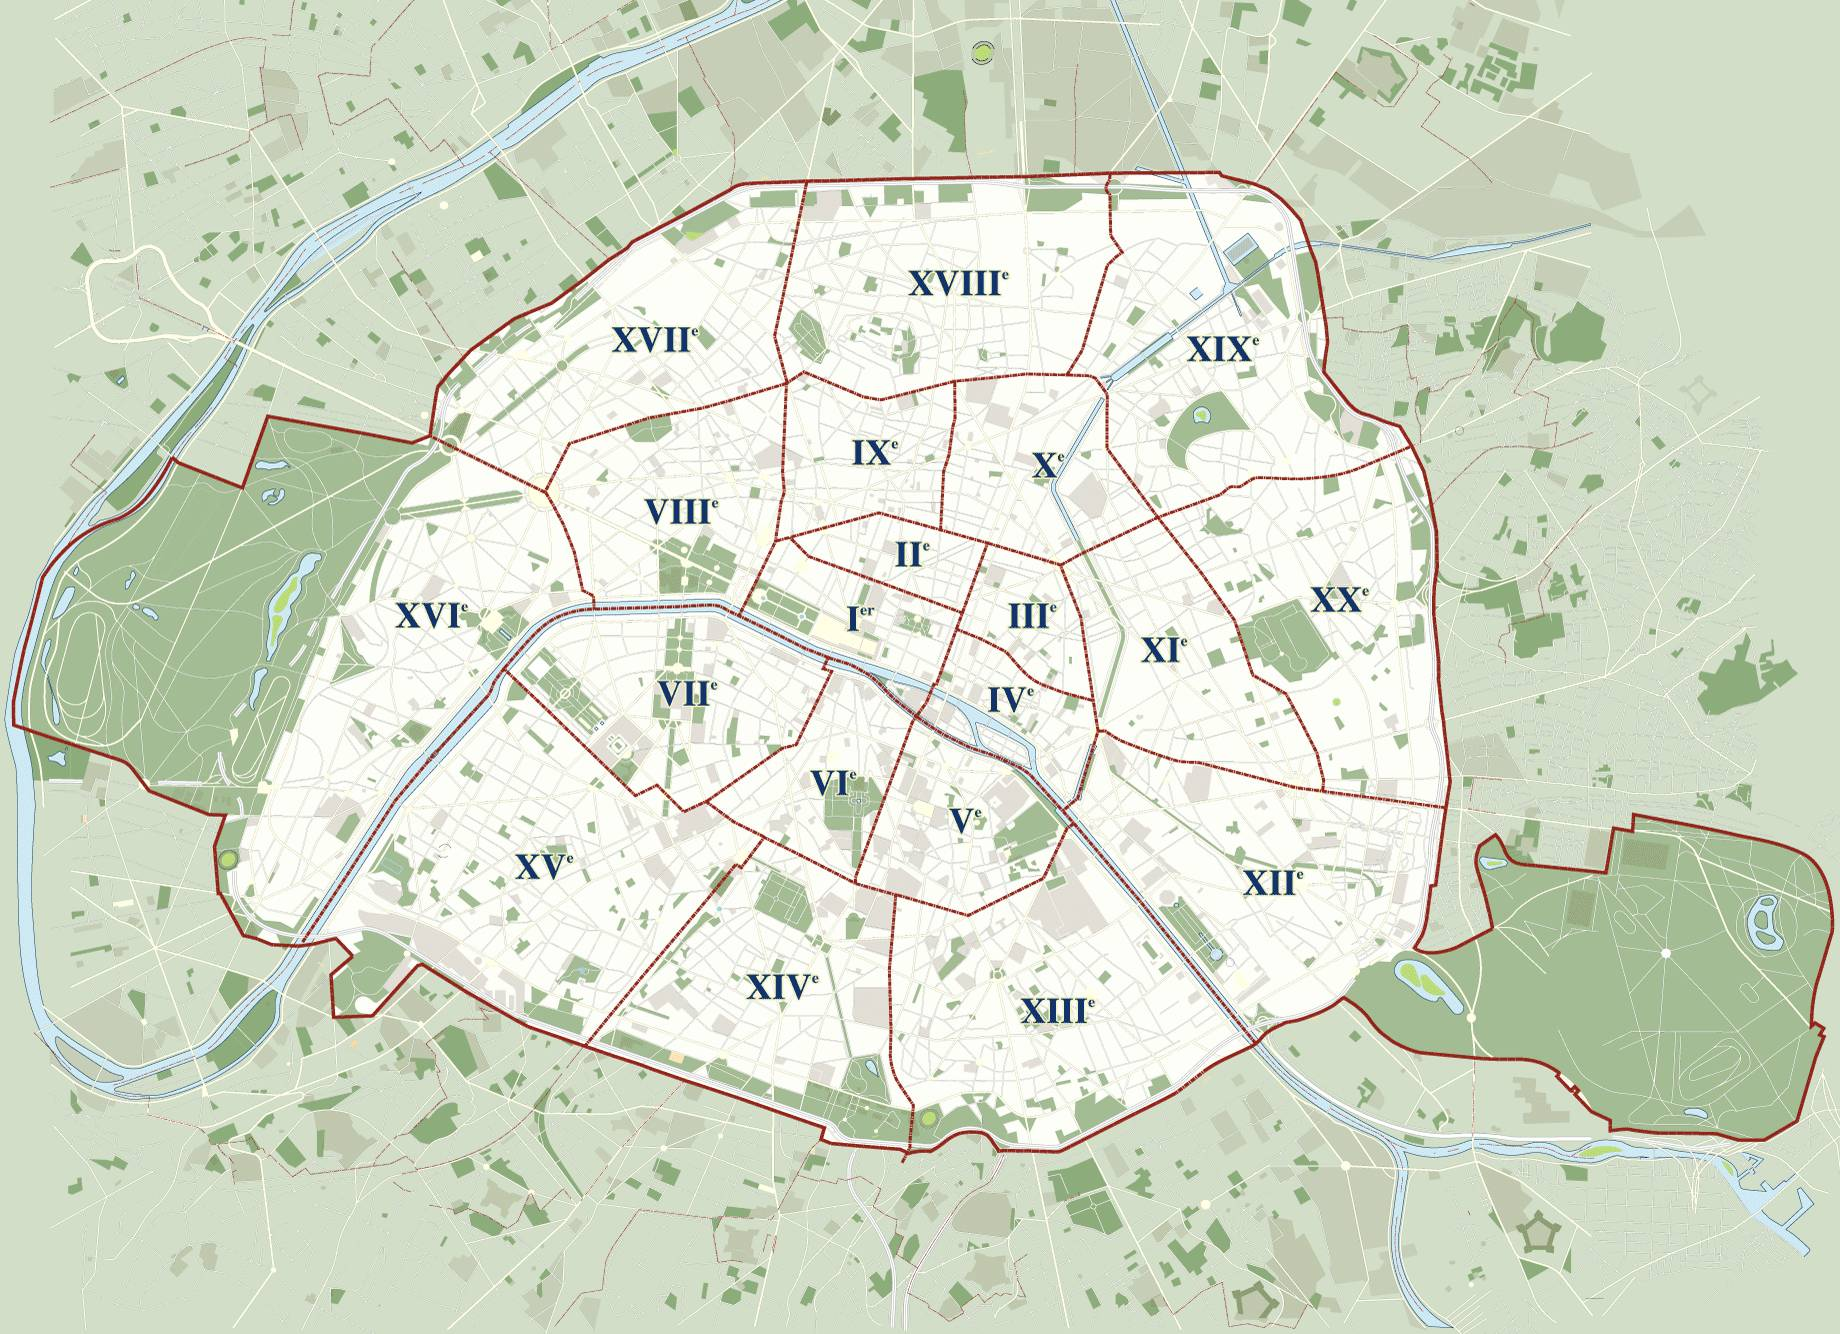 Carte de paris carte touristique et plan de paris for Appart hotel 5eme arrondissement paris